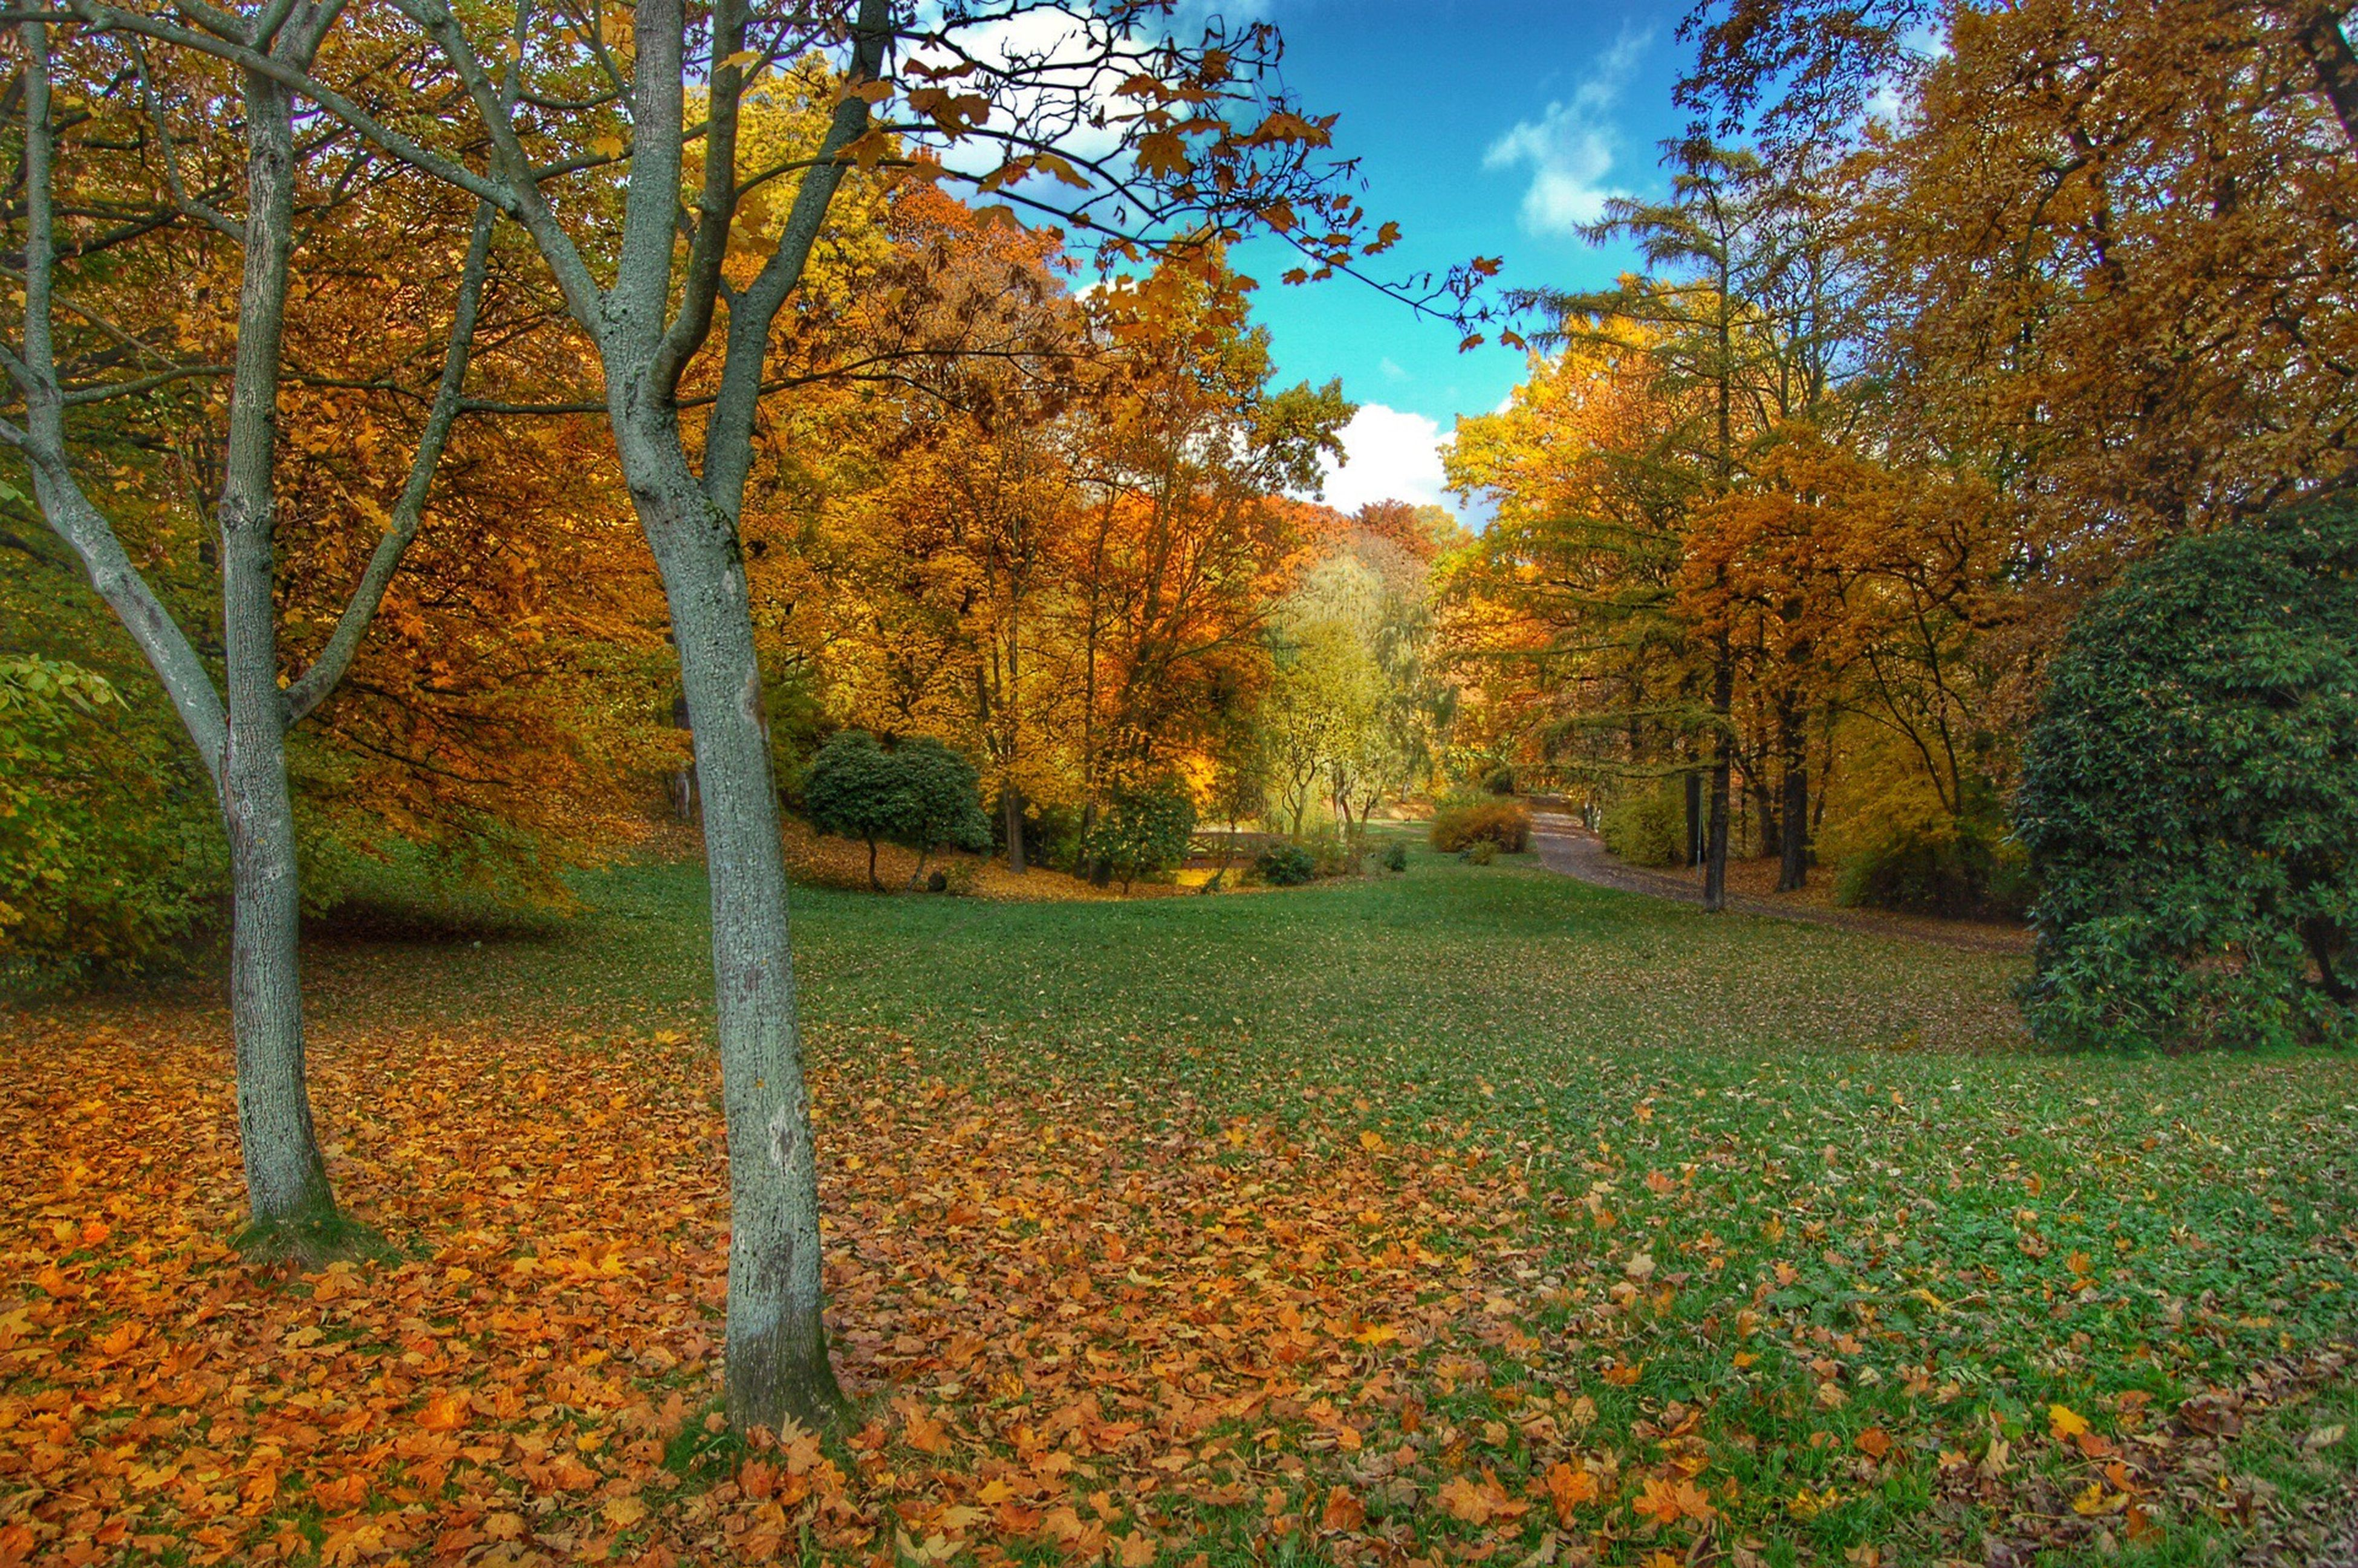 tree, nature, autumn, beauty in nature, growth, sky, outdoors, change, tranquility, leaf, day, no people, scenics, branch, water, grass